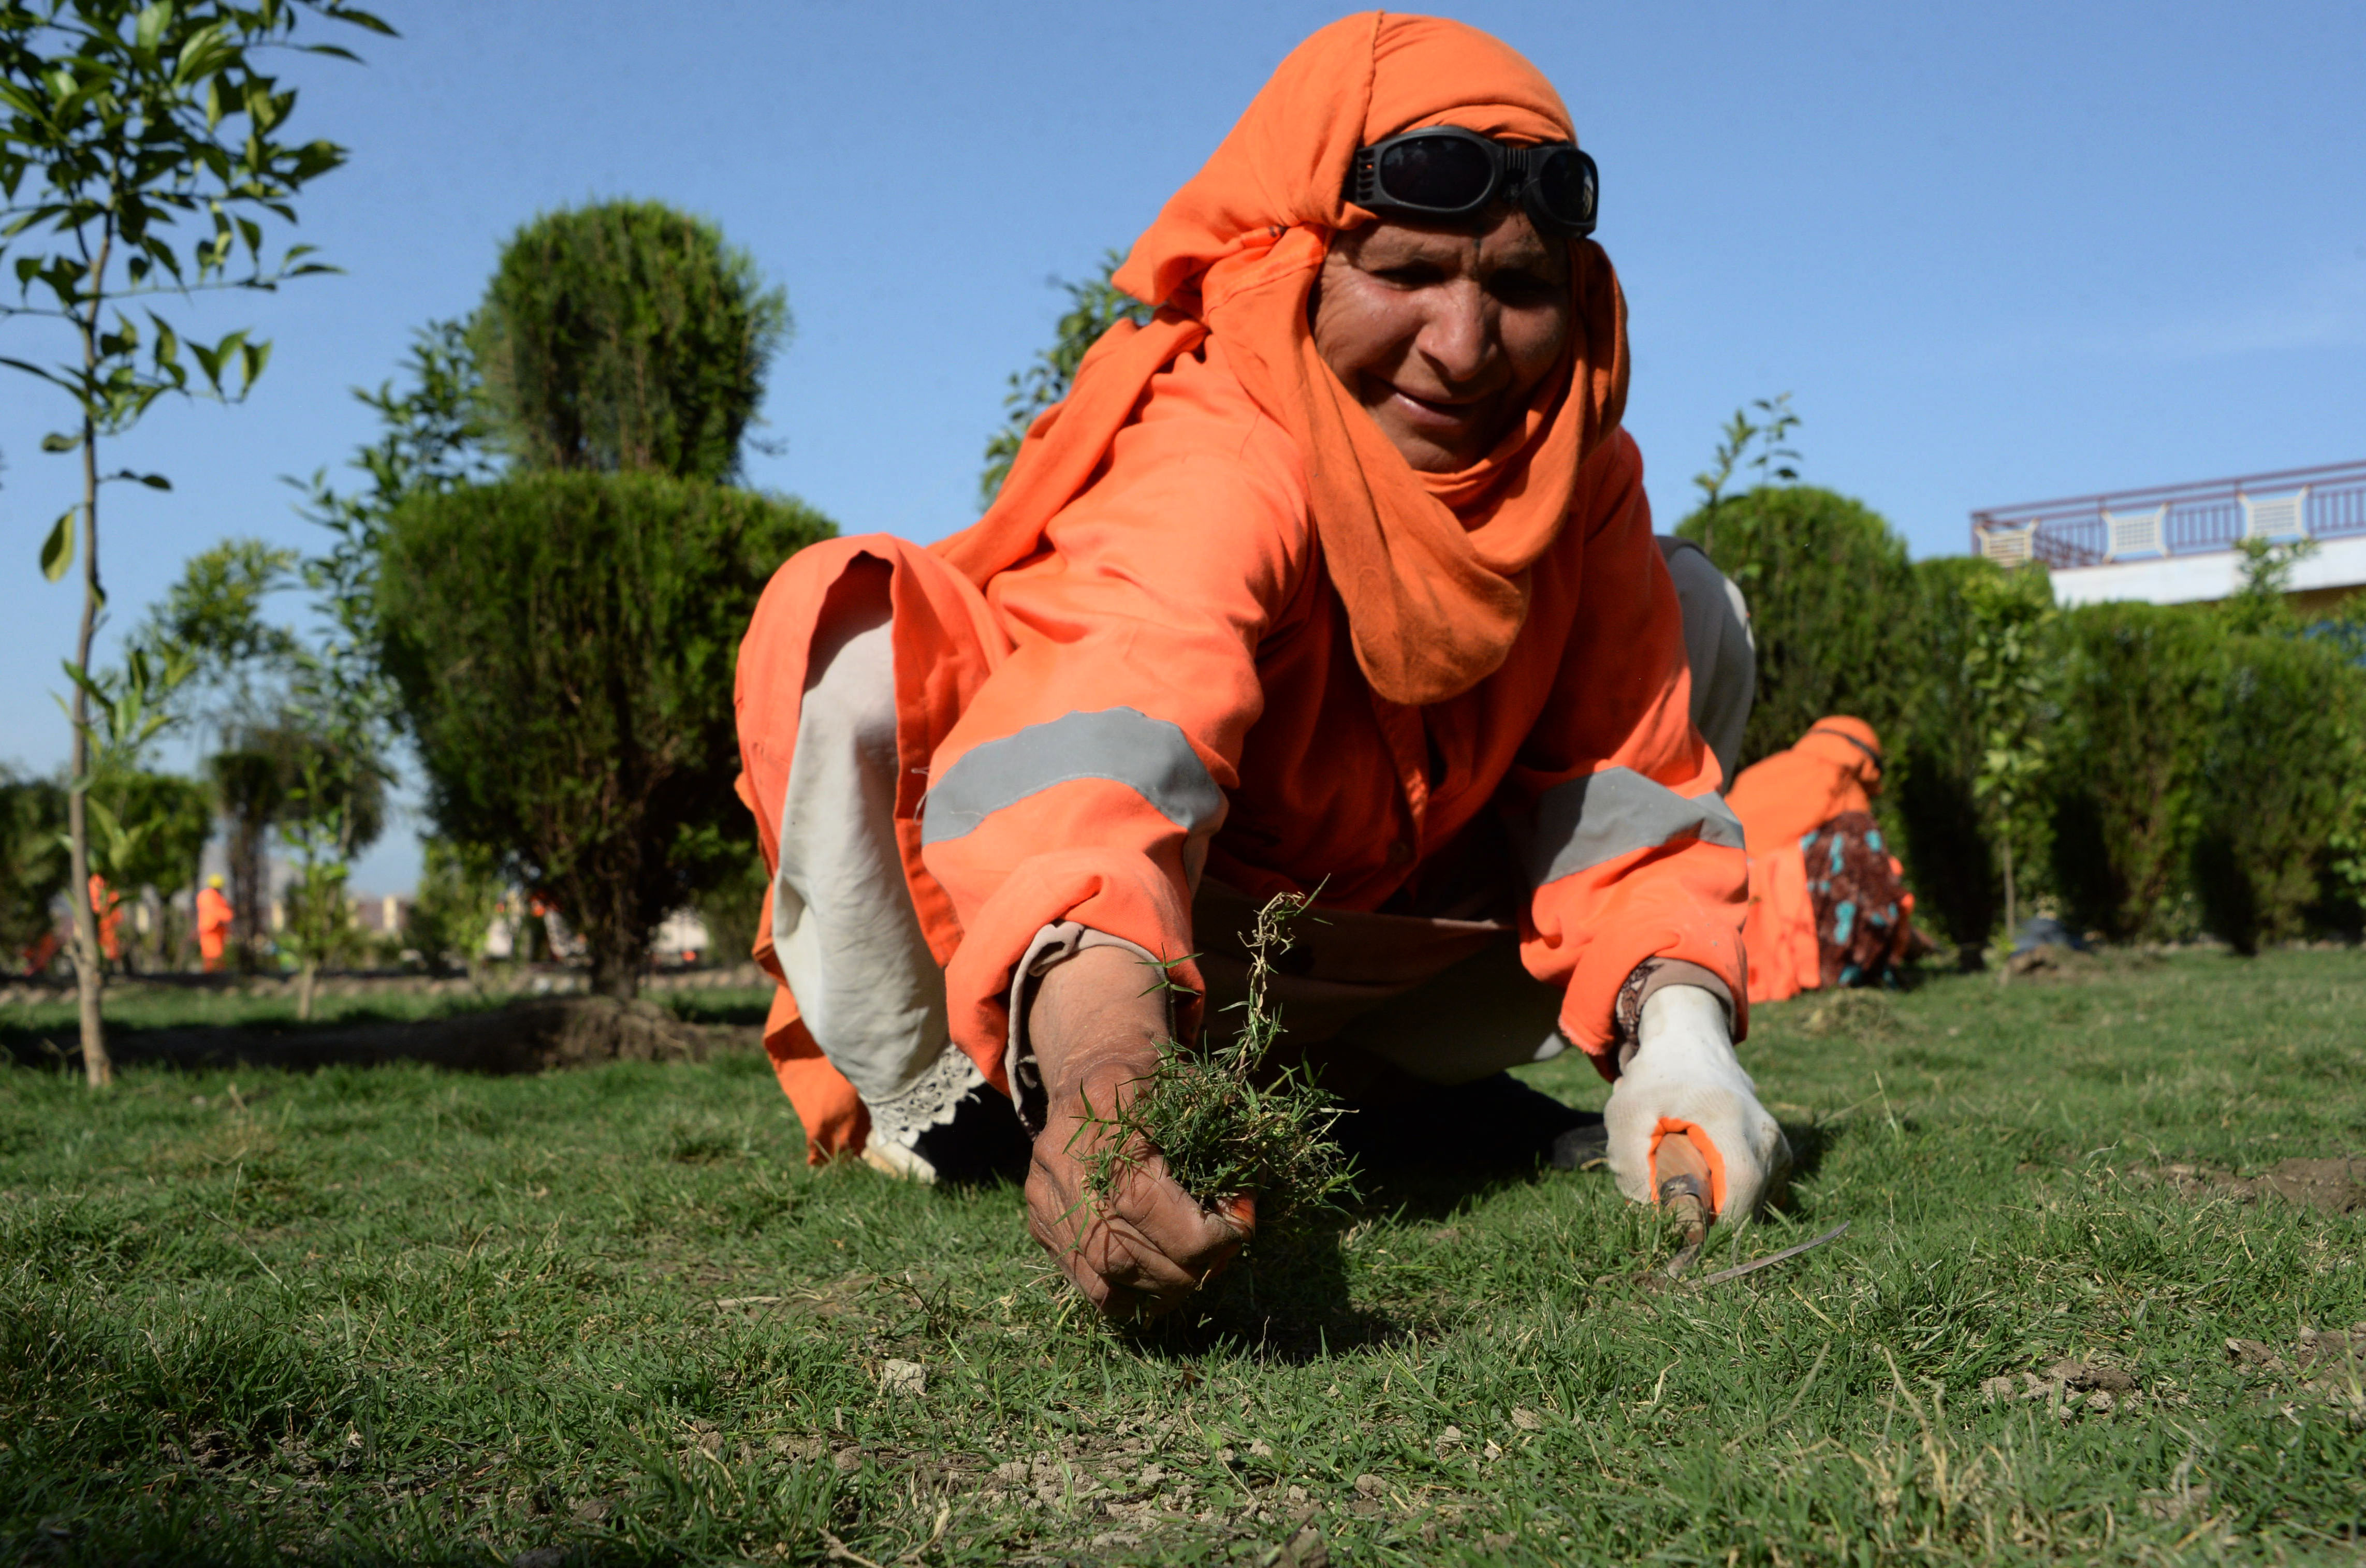 Changing Afghan women's lives through municipal work